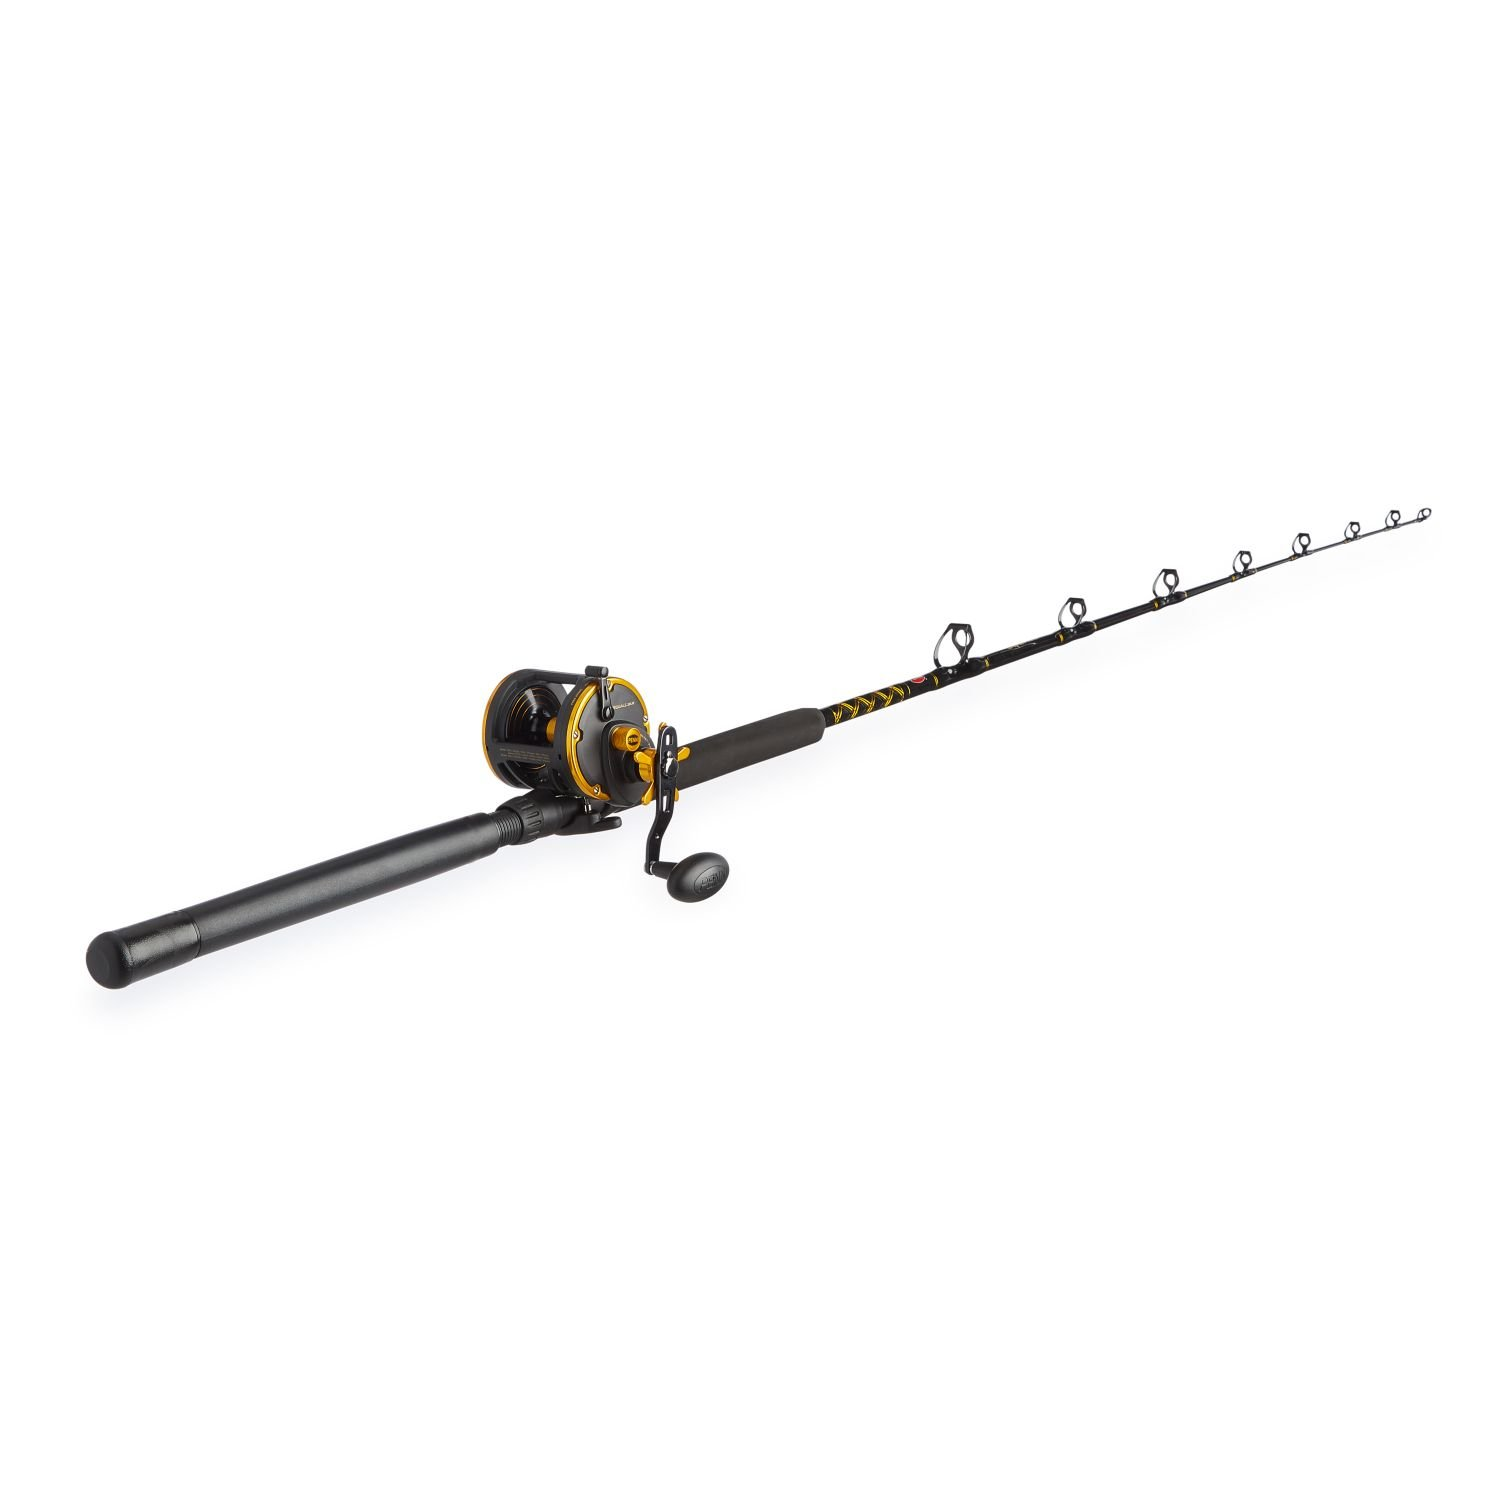 Penn Squall 30 Level Wind Fishing Rod and Trolling Reel Combo, 6.5 Feet by Penn